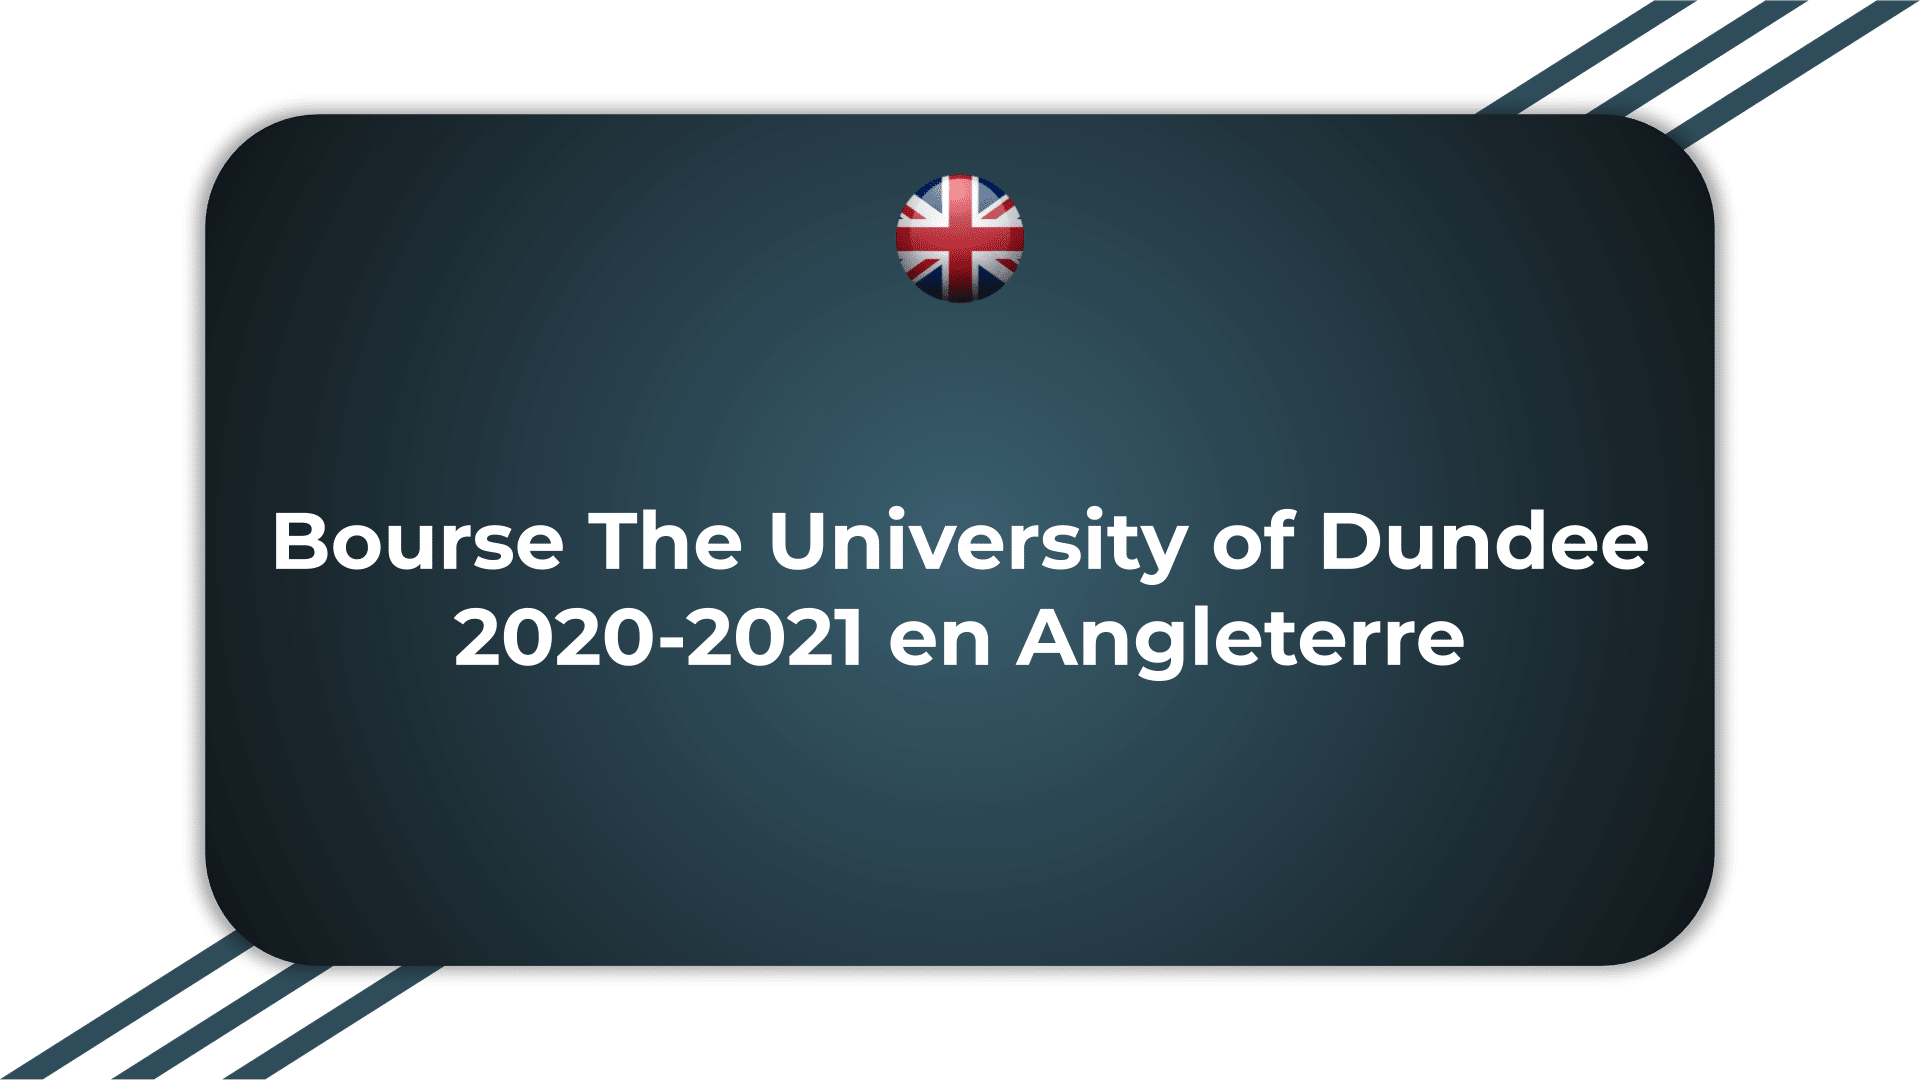 Bourse The University of Dundee